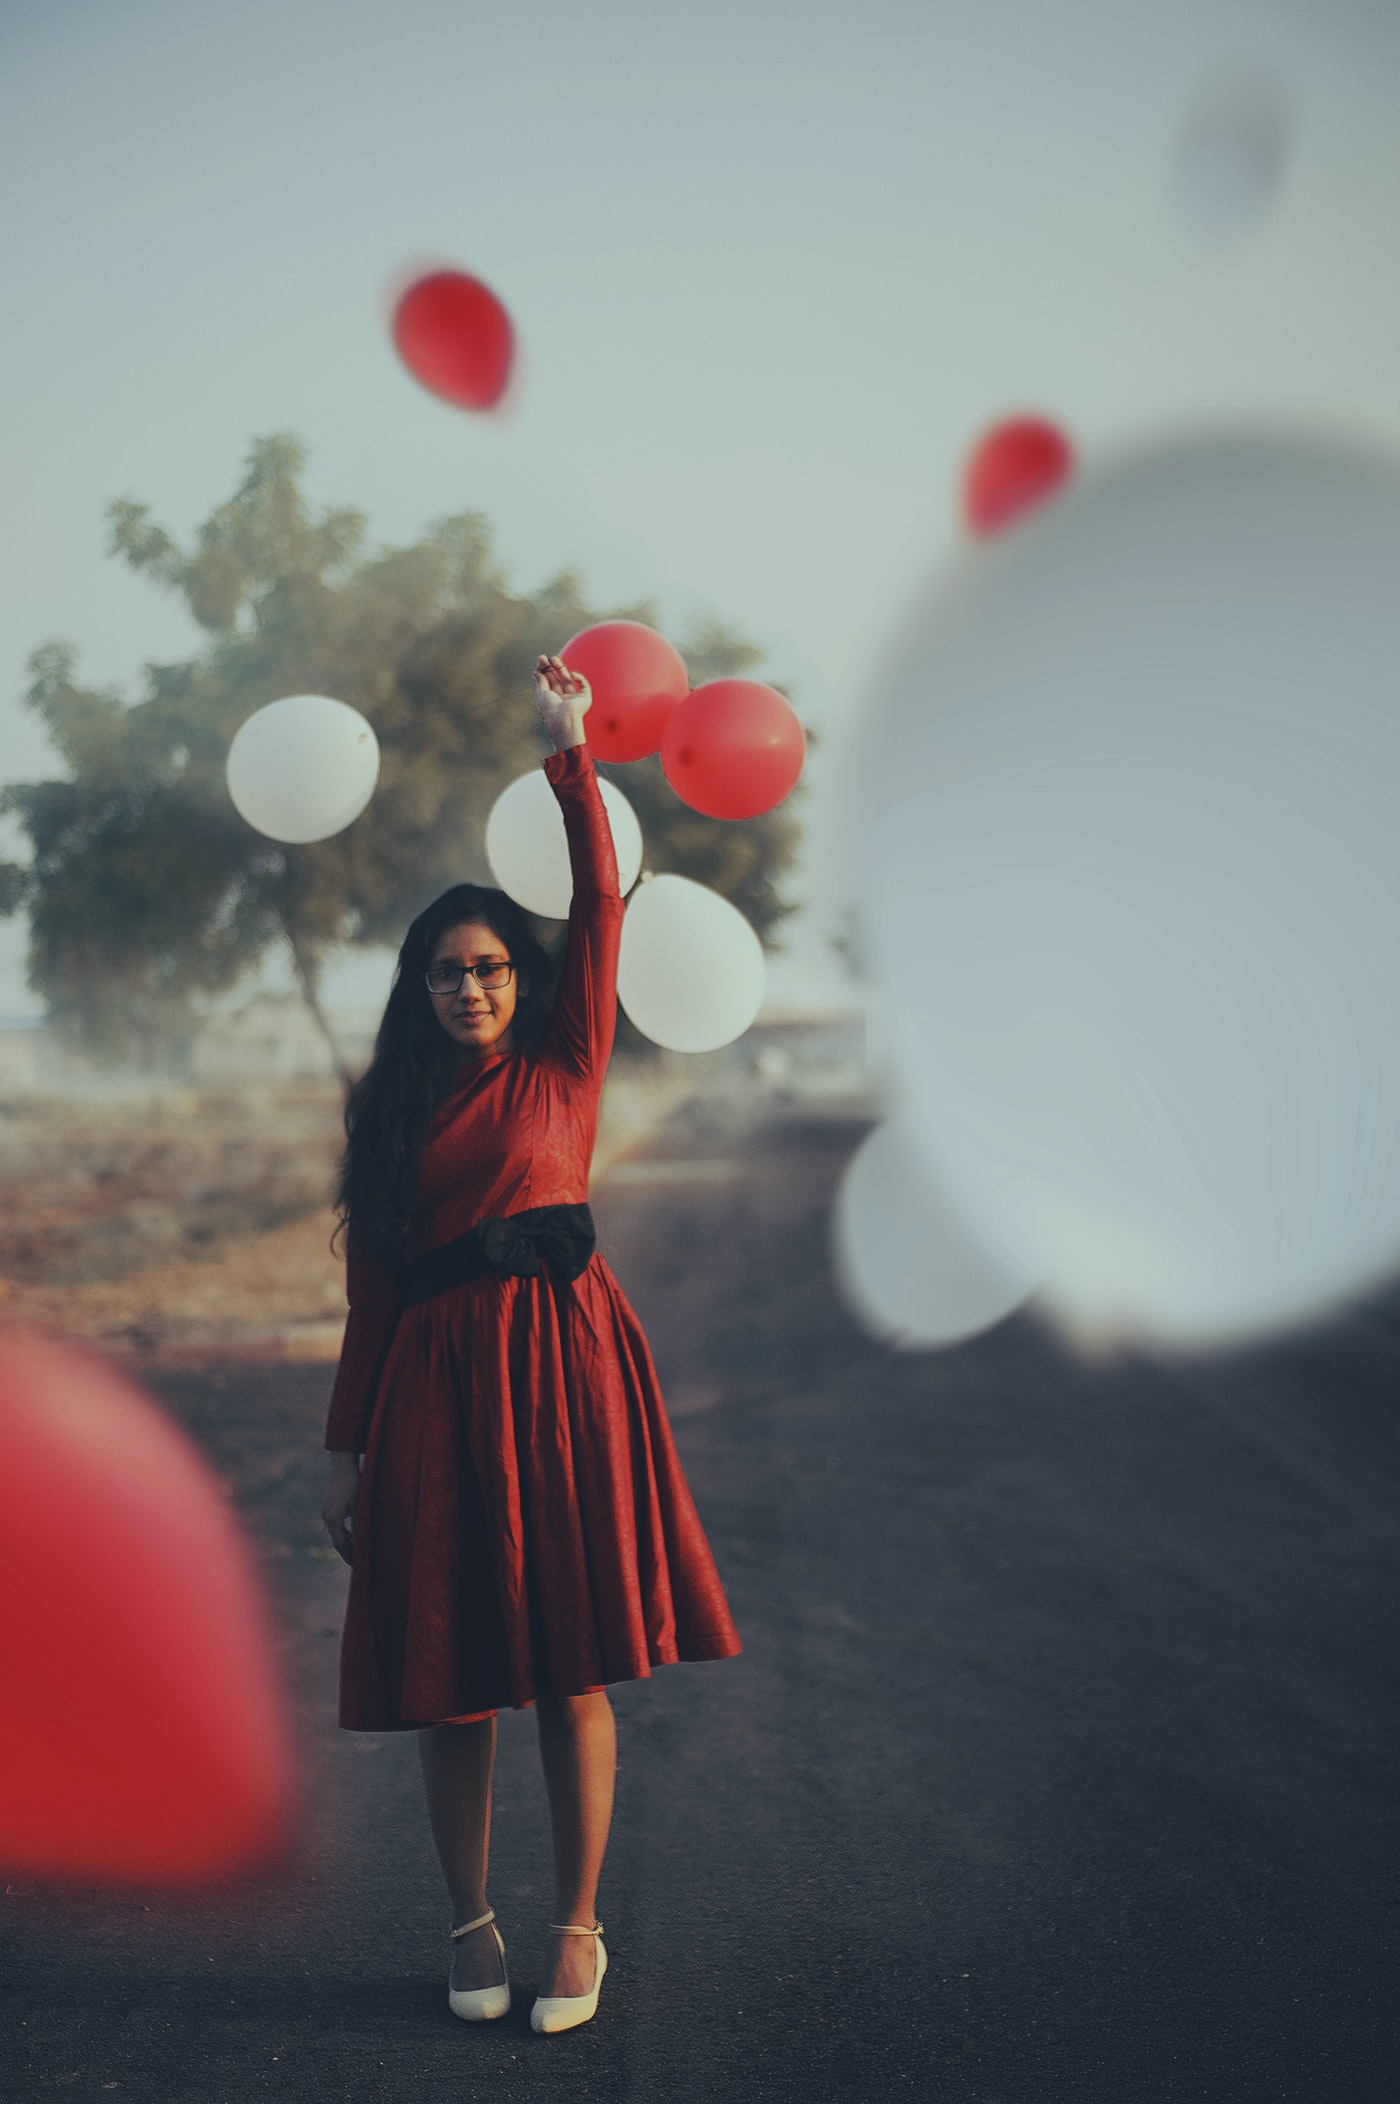 focus photography of woman standing on road raising her left hand